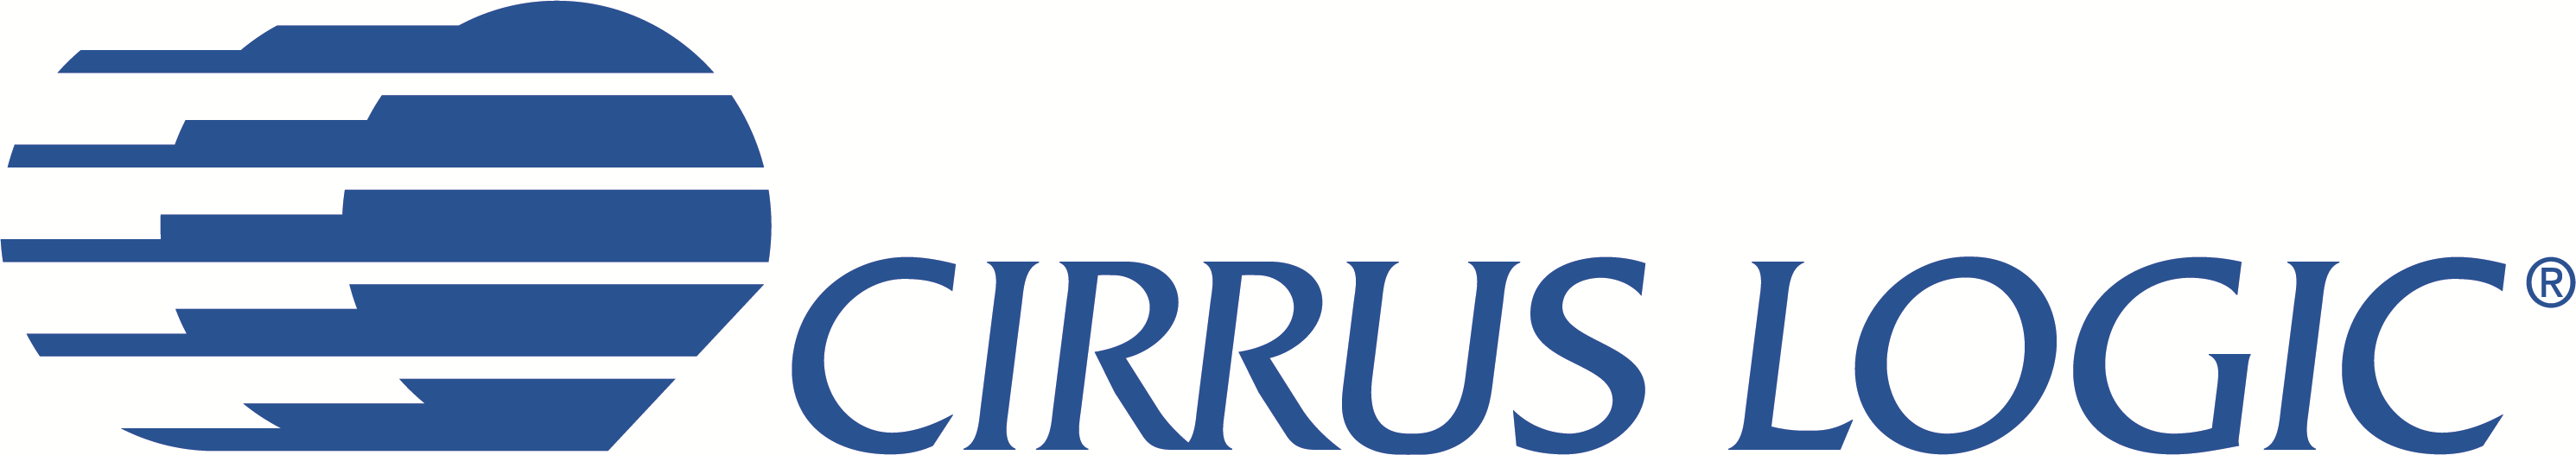 Cirrus Logic, Inc. logo